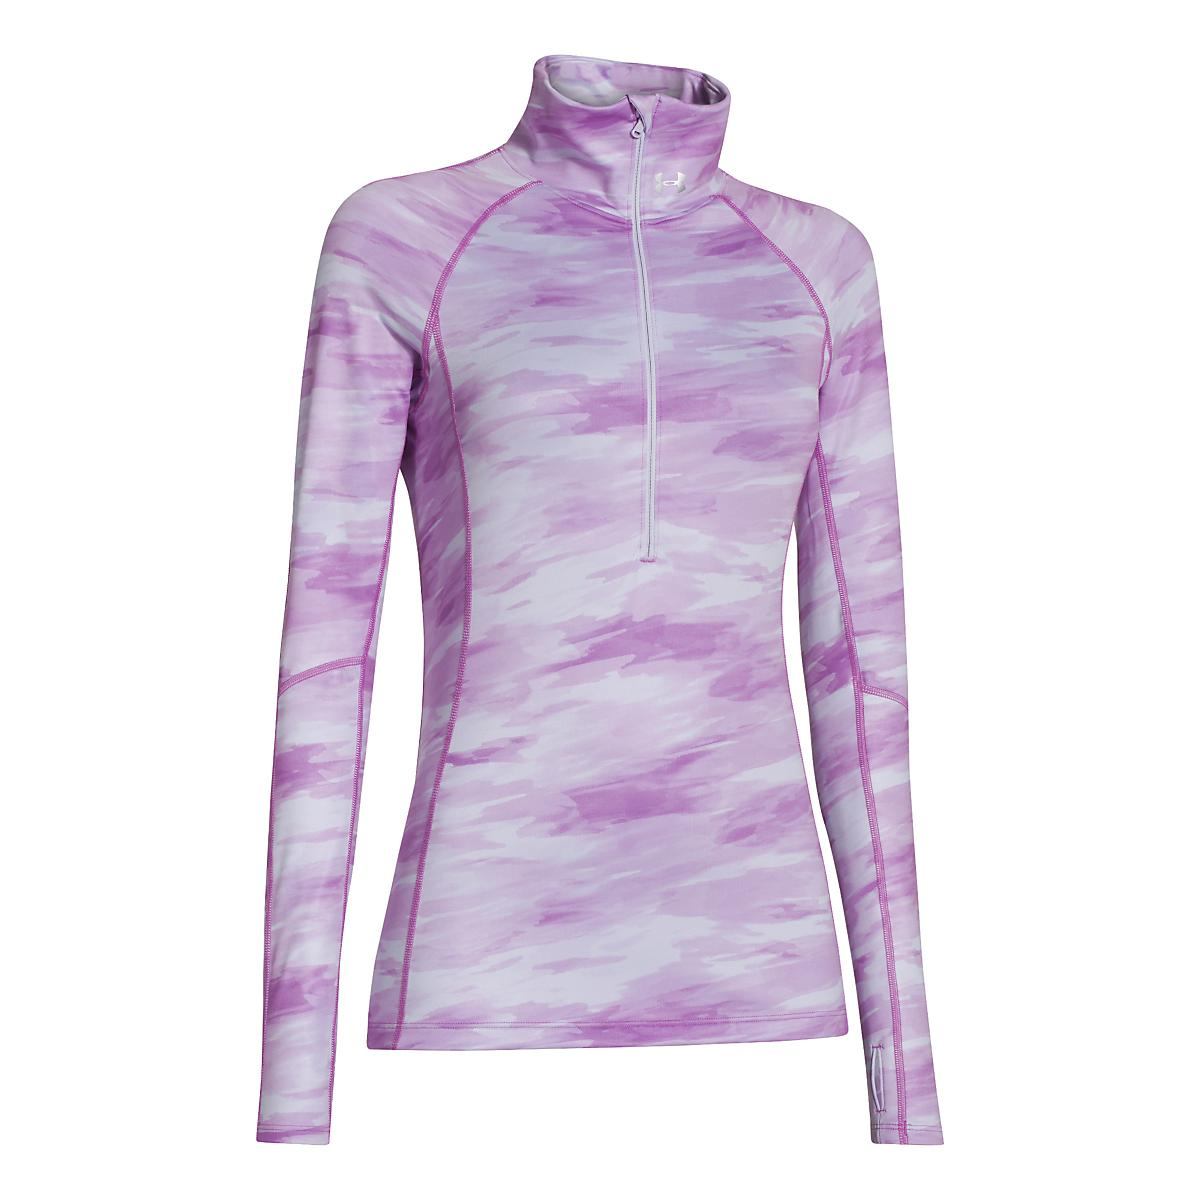 Women's Under Armour�Coldgear Cozy Printed 1/2 Zip